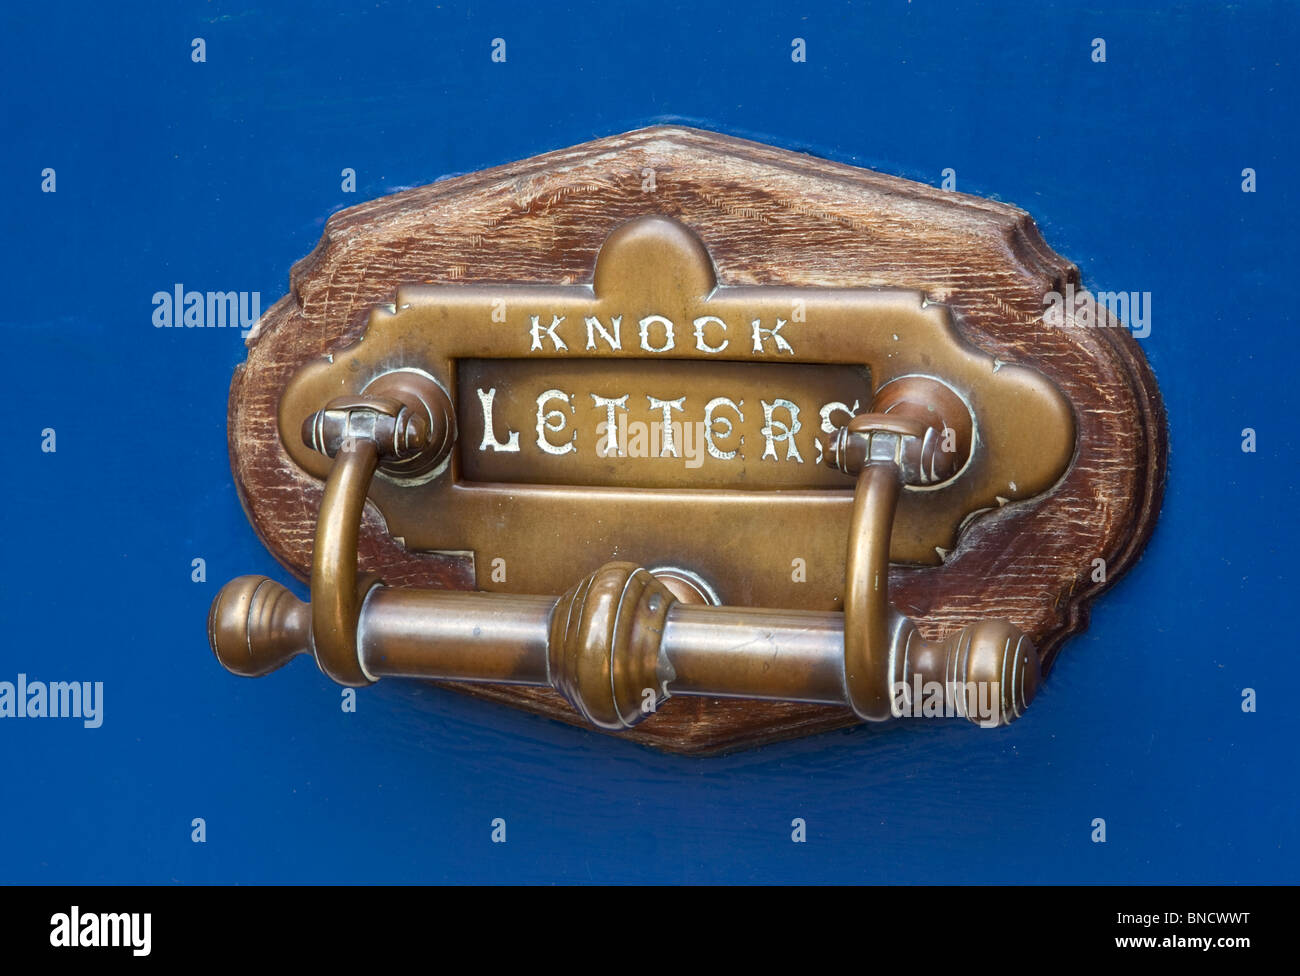 Brass letter box, England - Stock Image